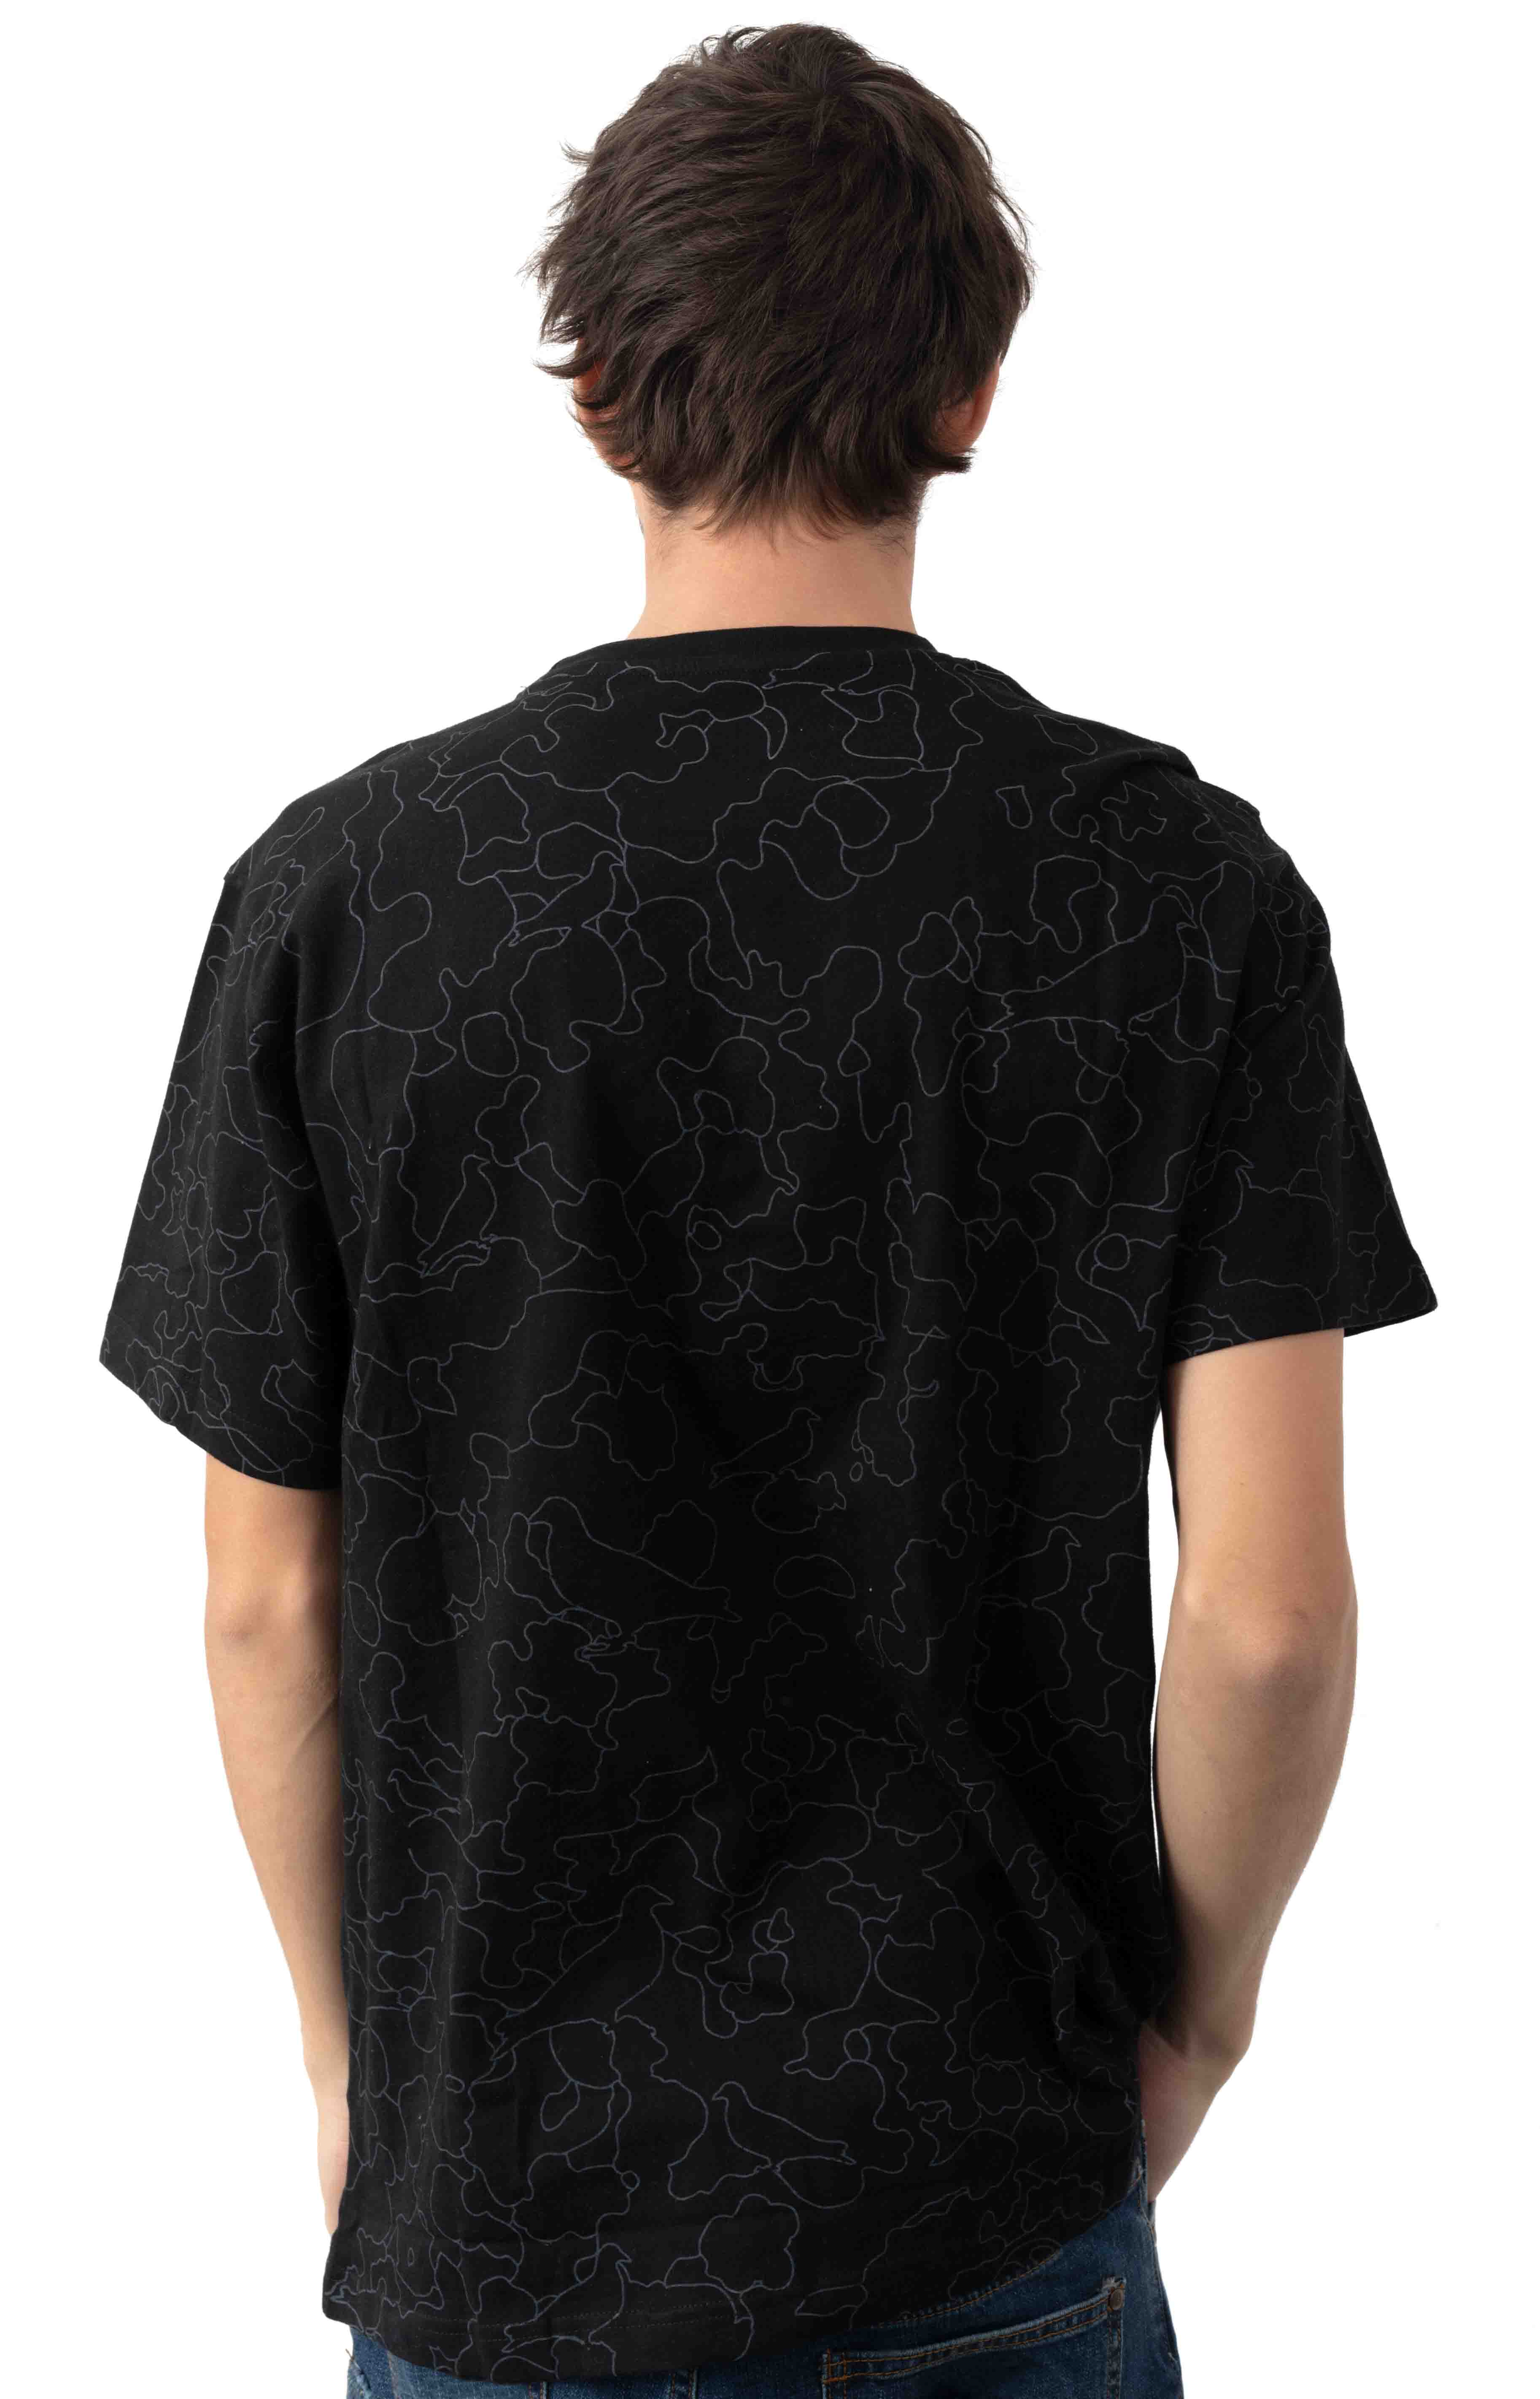 Camo Pigeon Pocket T-Shirt - Black 3